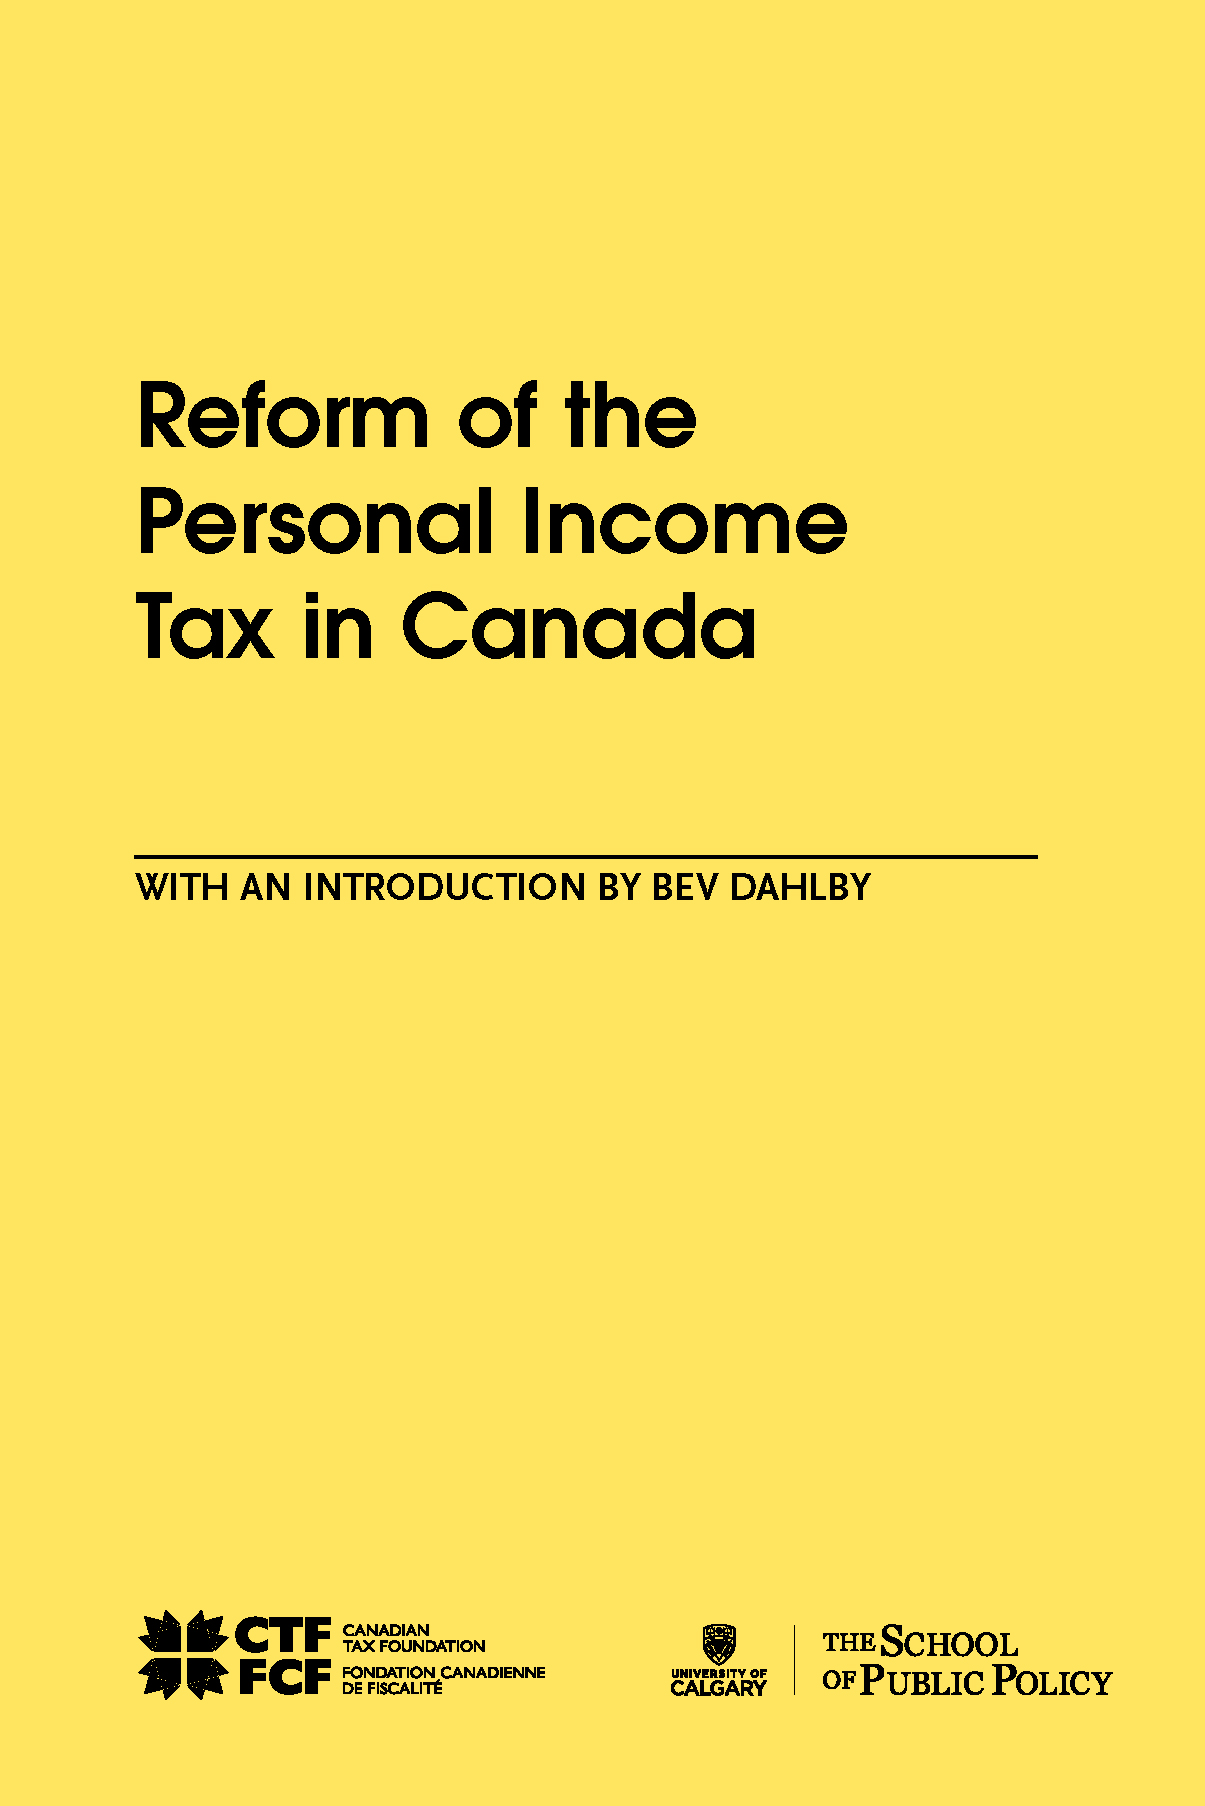 Reform of the Personal Income Tax in Canada